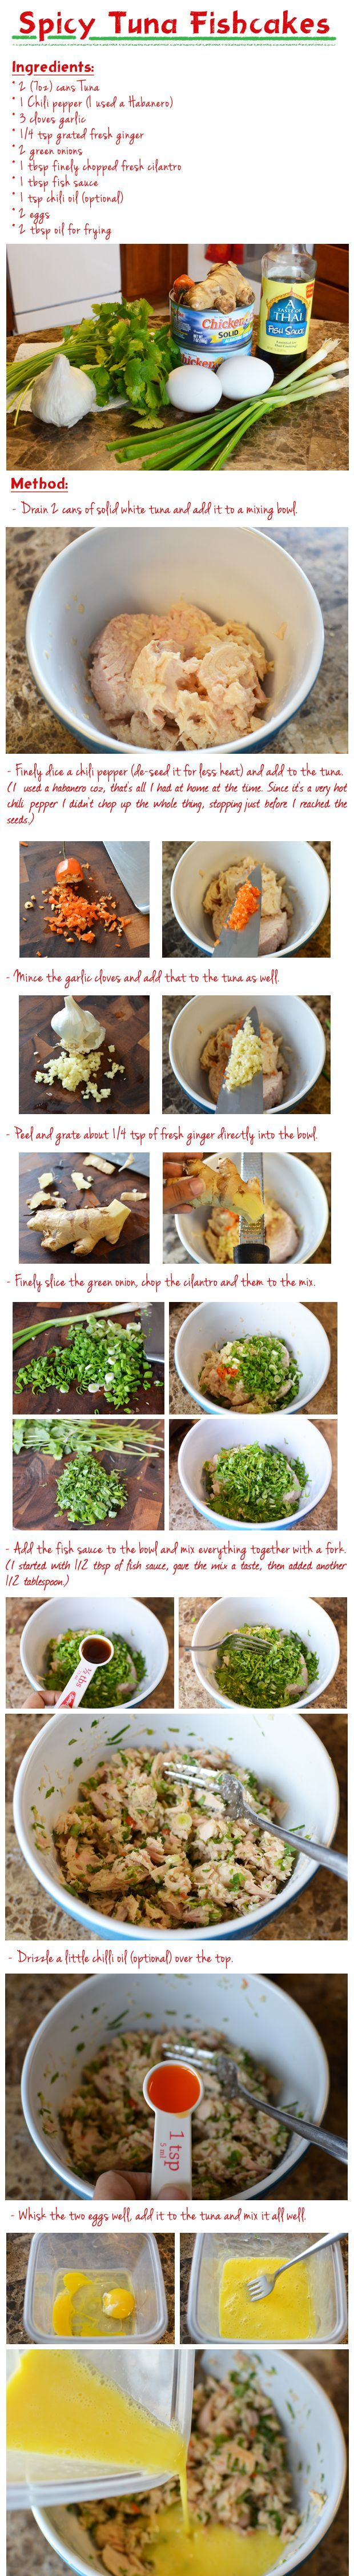 Spicy Tuna Fish-Cakes | Favorite Recipes | Pinterest